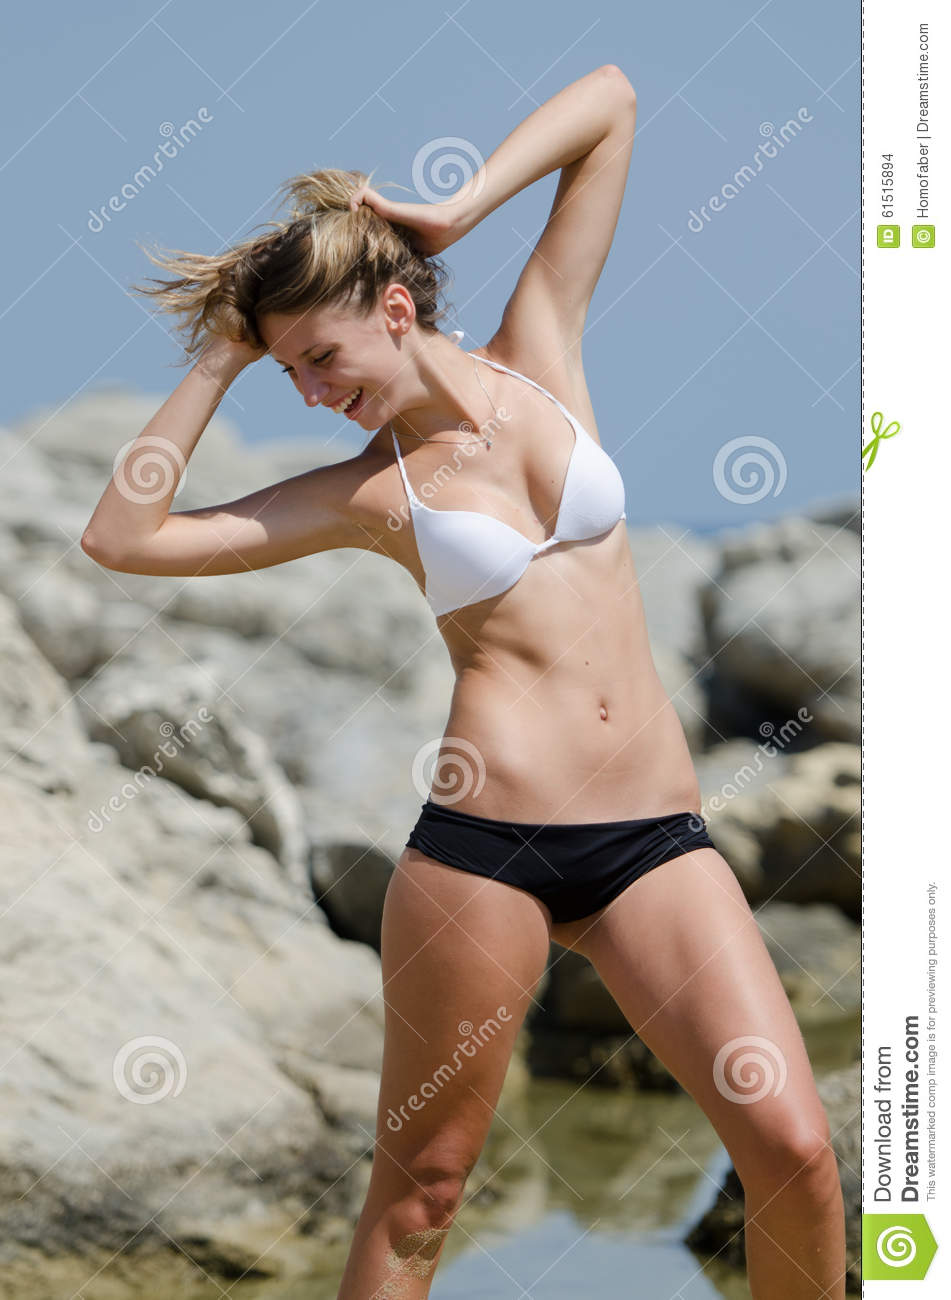 Tall slim female model standing between sea rocks wearing a black and white  bikini. Hands on head looking down and laughing.Vertical photo